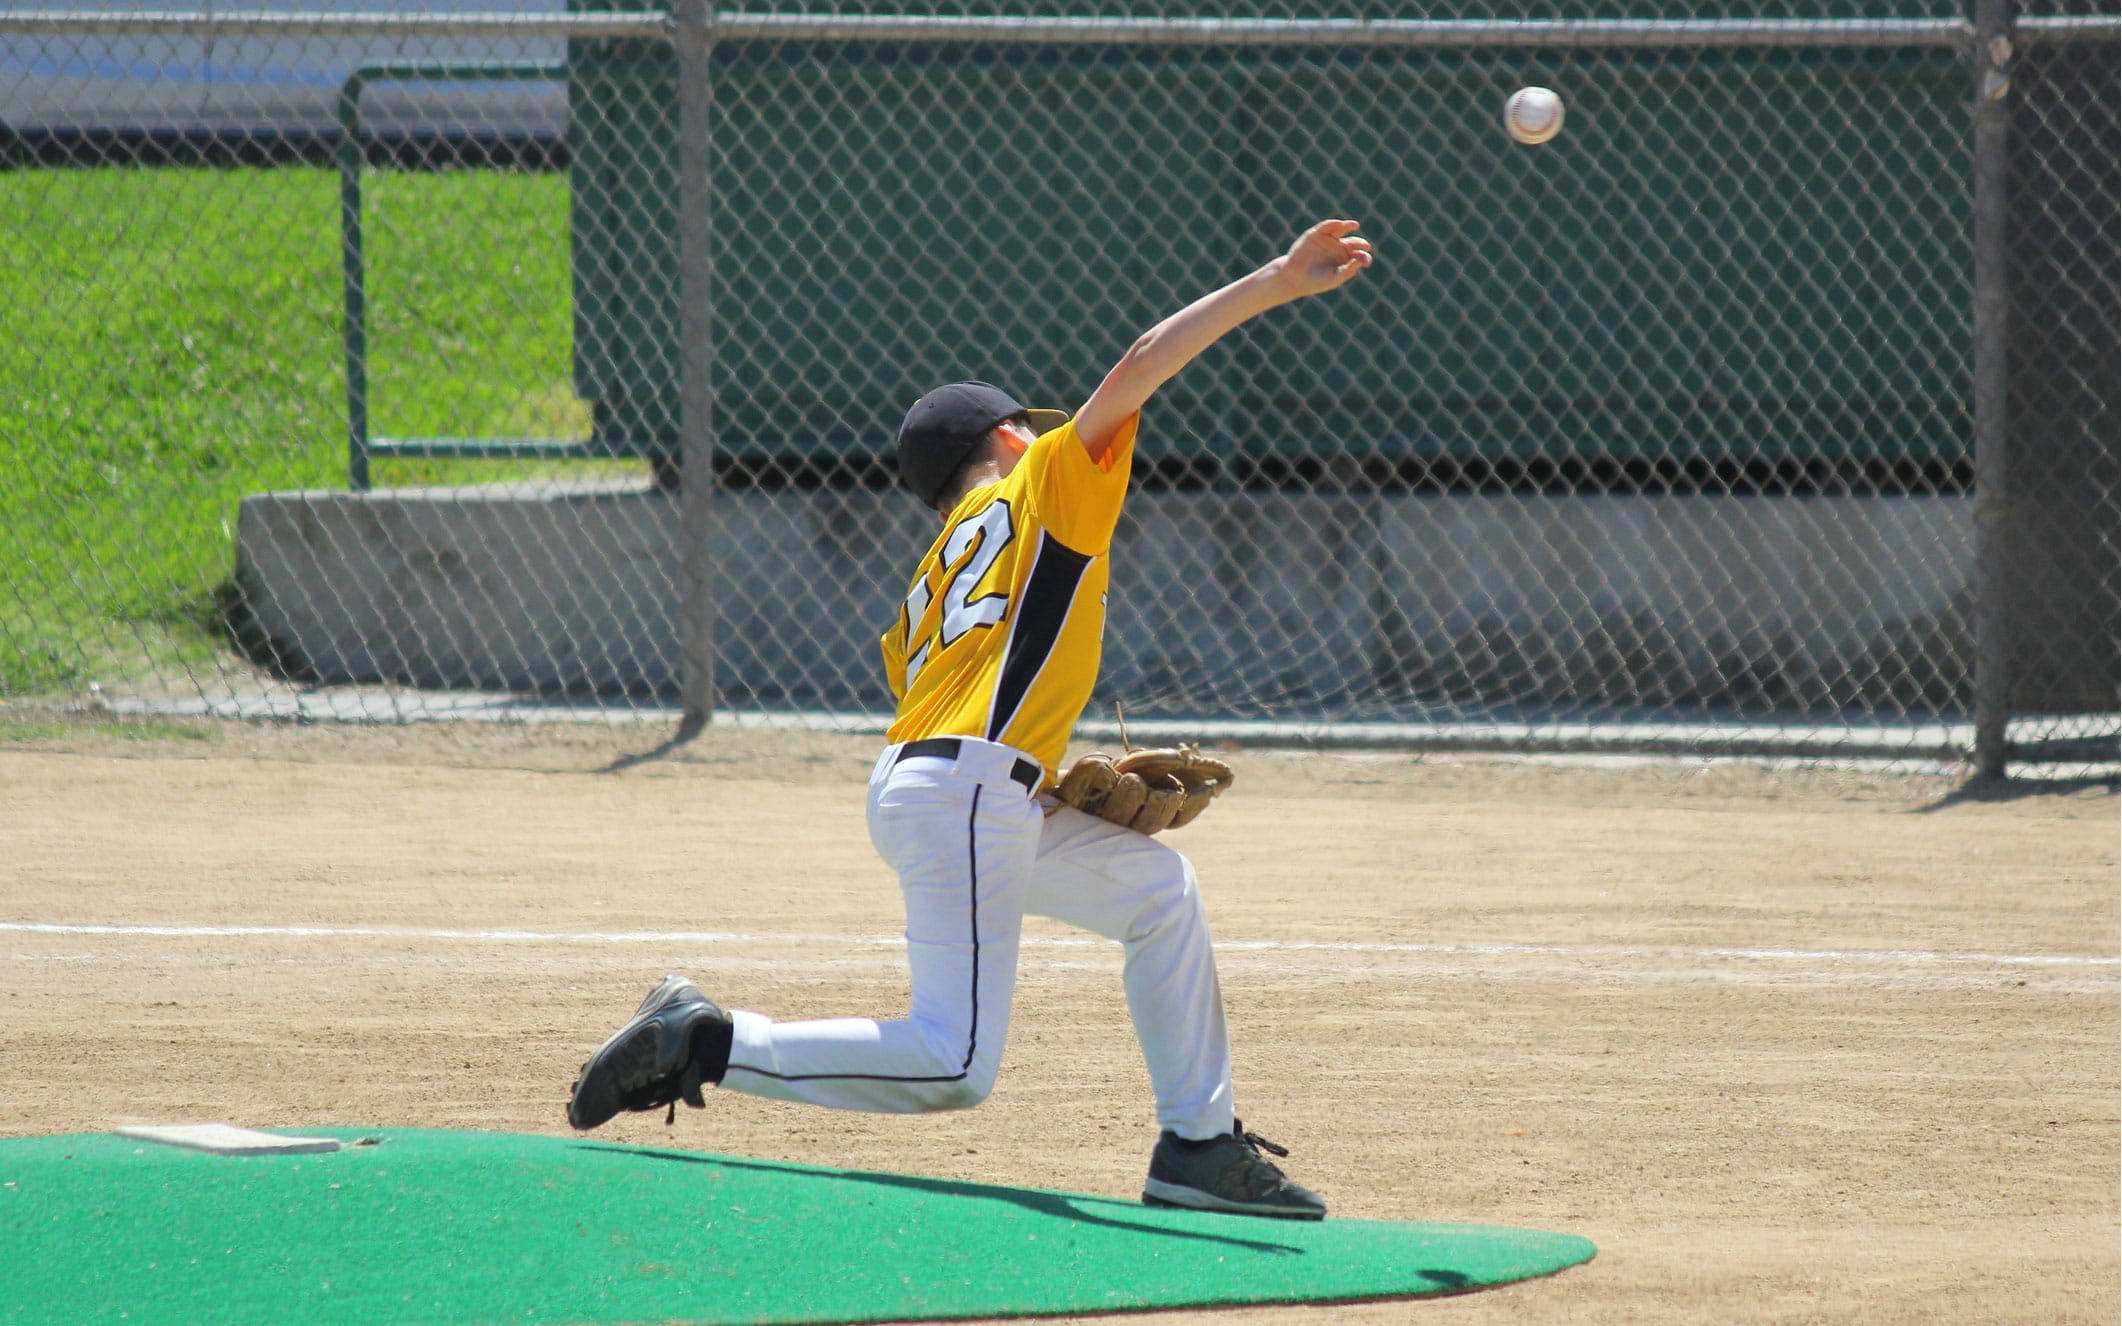 kid pitcher